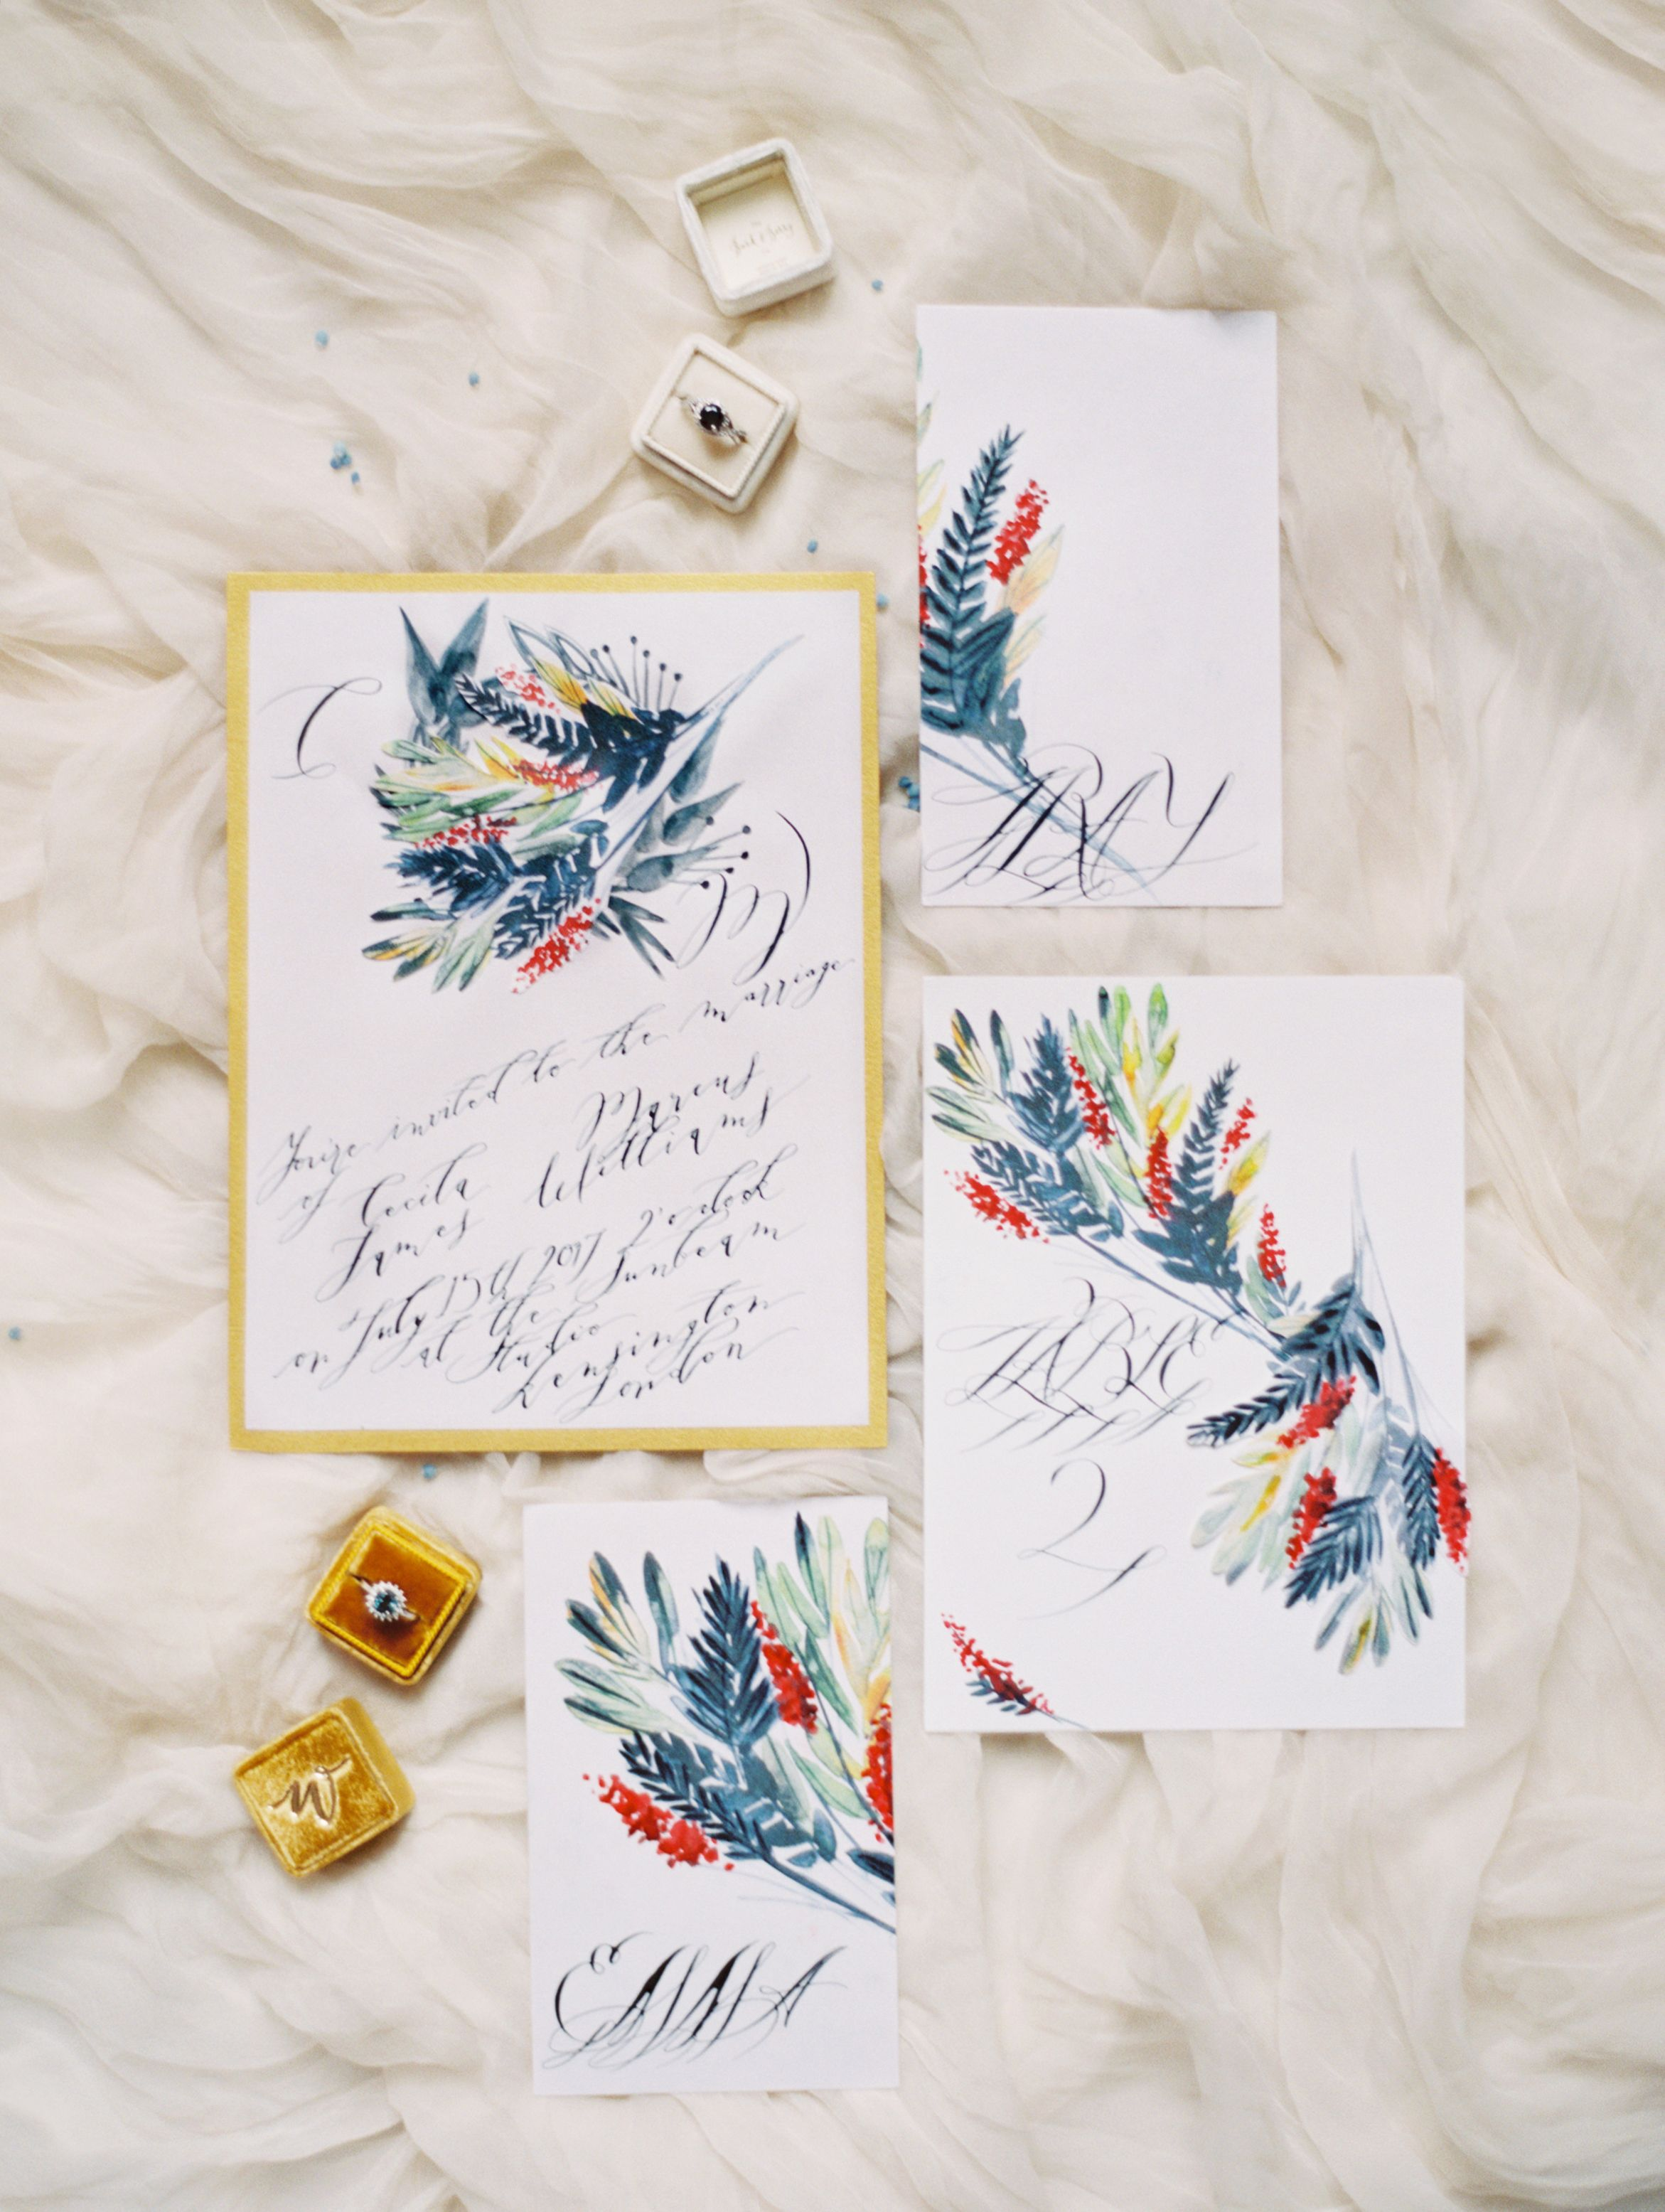 Floral wedding invitations with dark leaves, berries and calligraphy ...